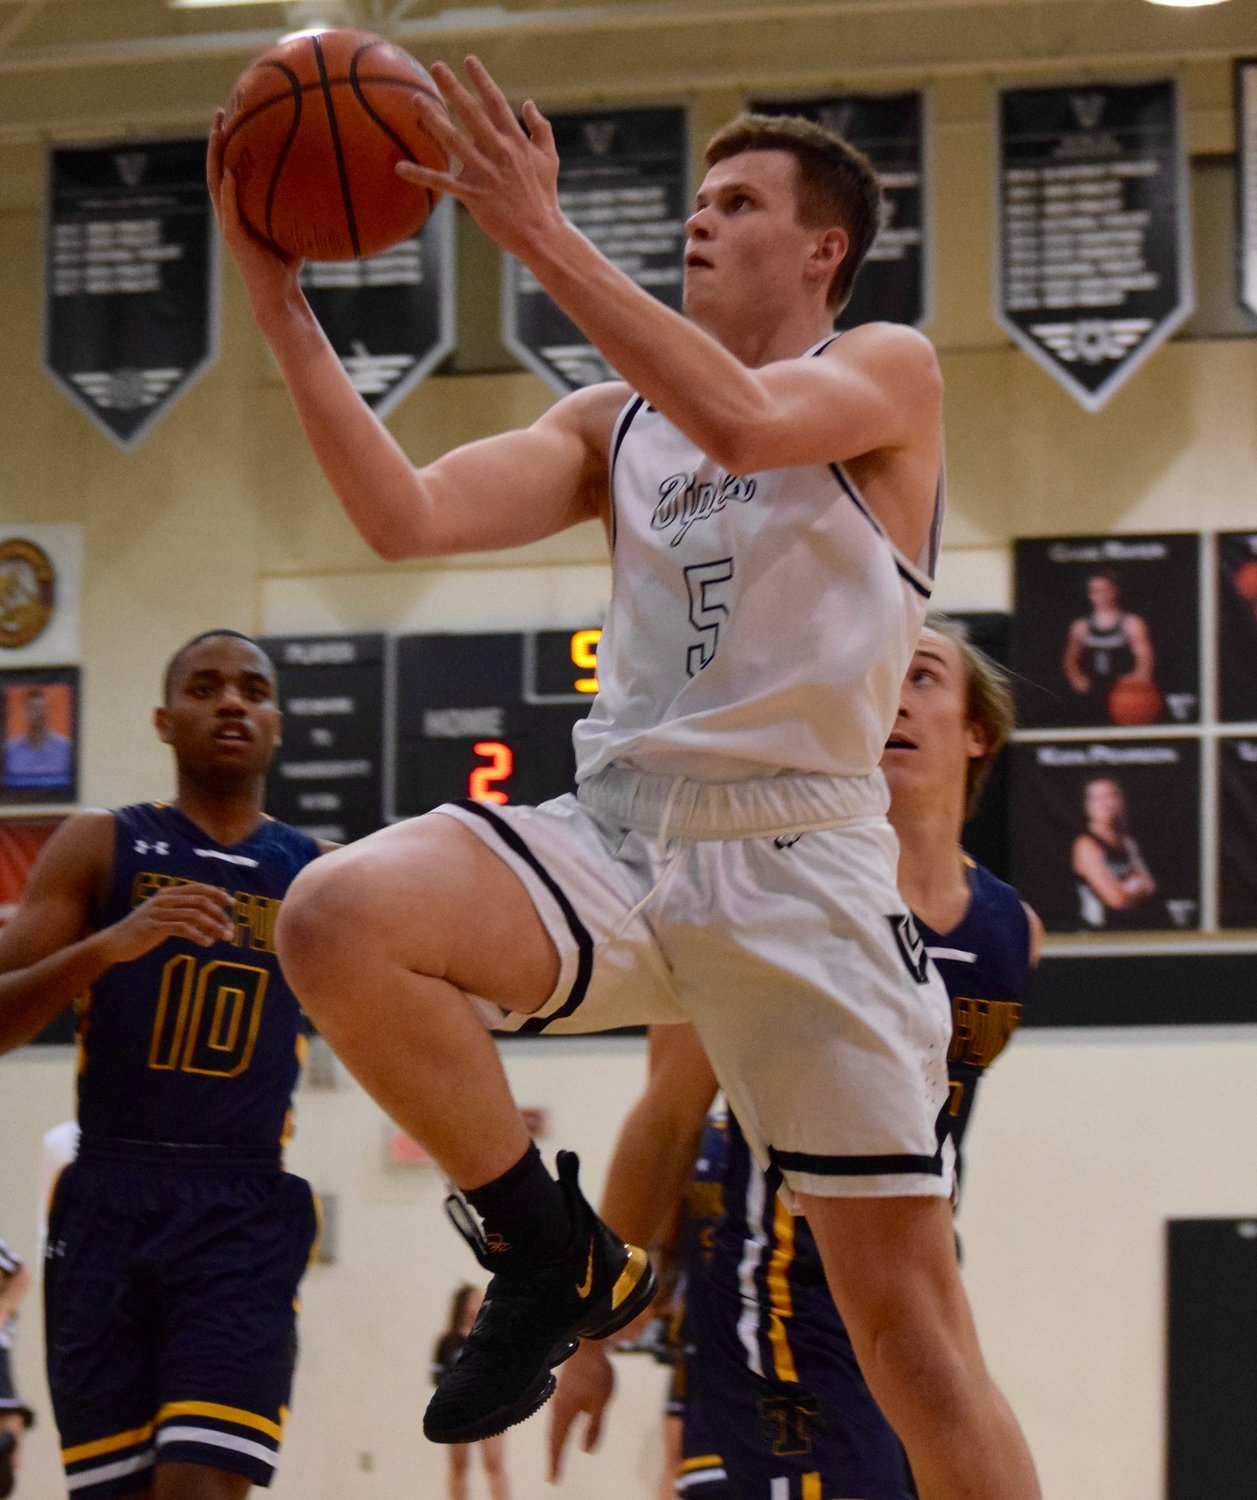 Jake Hatch and Vandegrift beat Stony Point 68-56 at home on Tuesday to clinch the final postseason spot from District 13-6A.